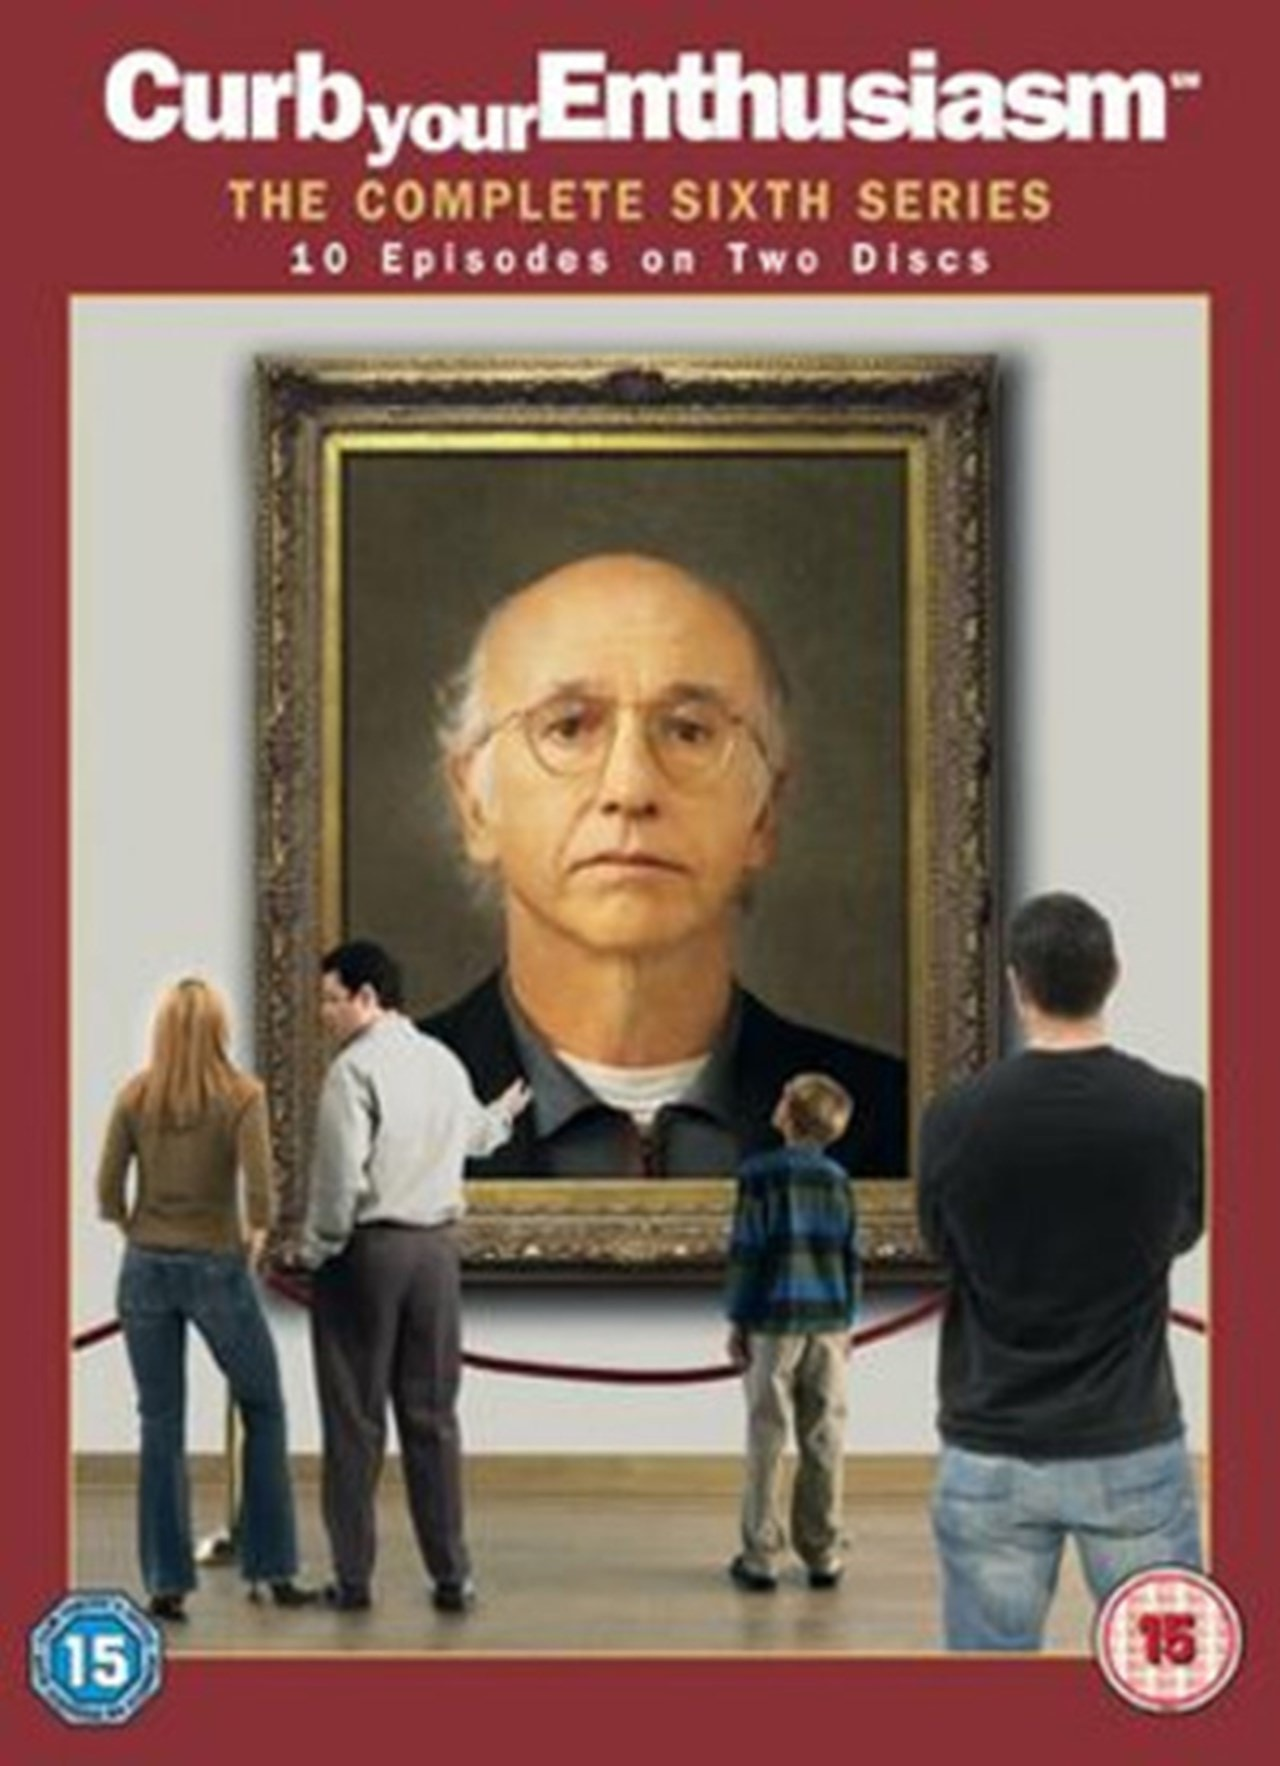 Curb Your Enthusiasm: The Complete Sixth Series - 1